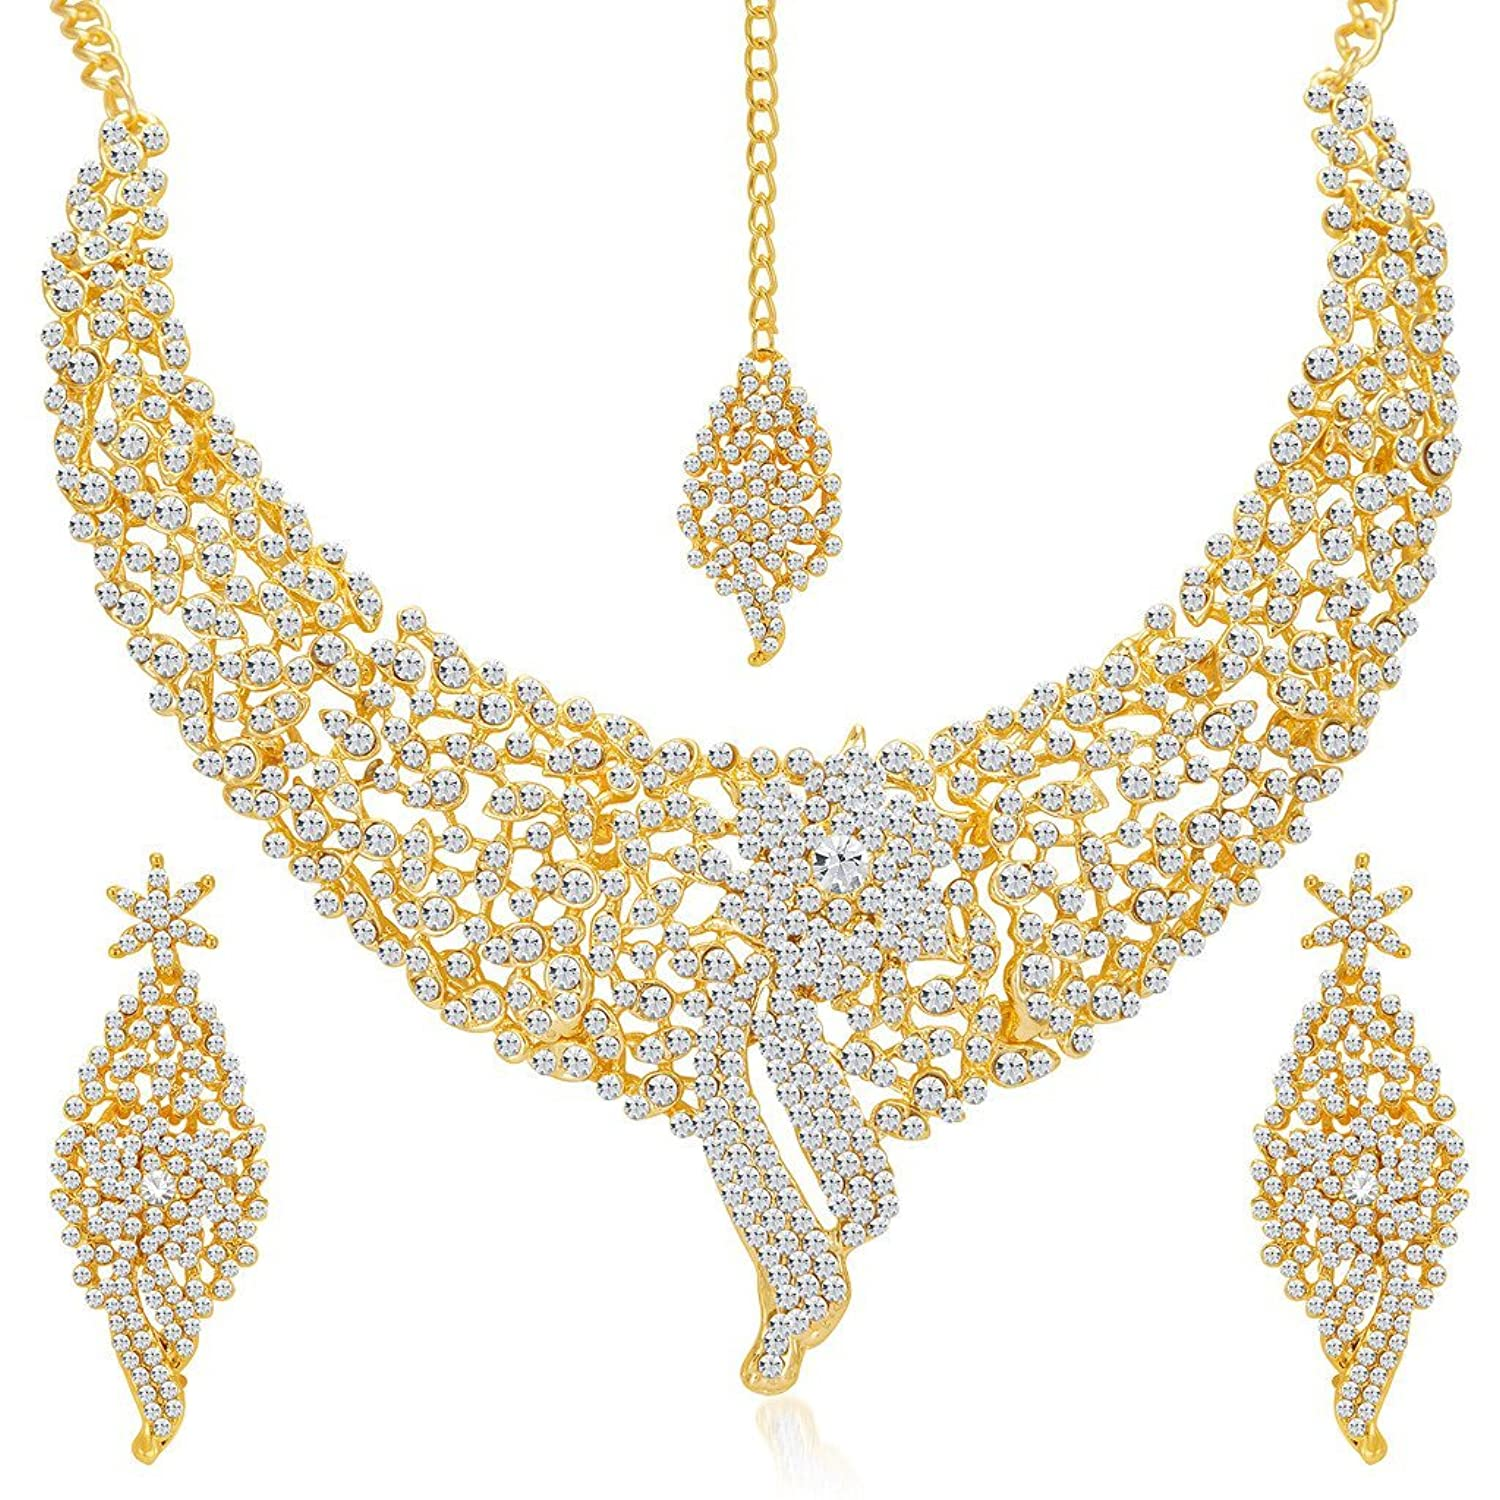 Min. 70% Off On Fashion Jewellery By Amazon